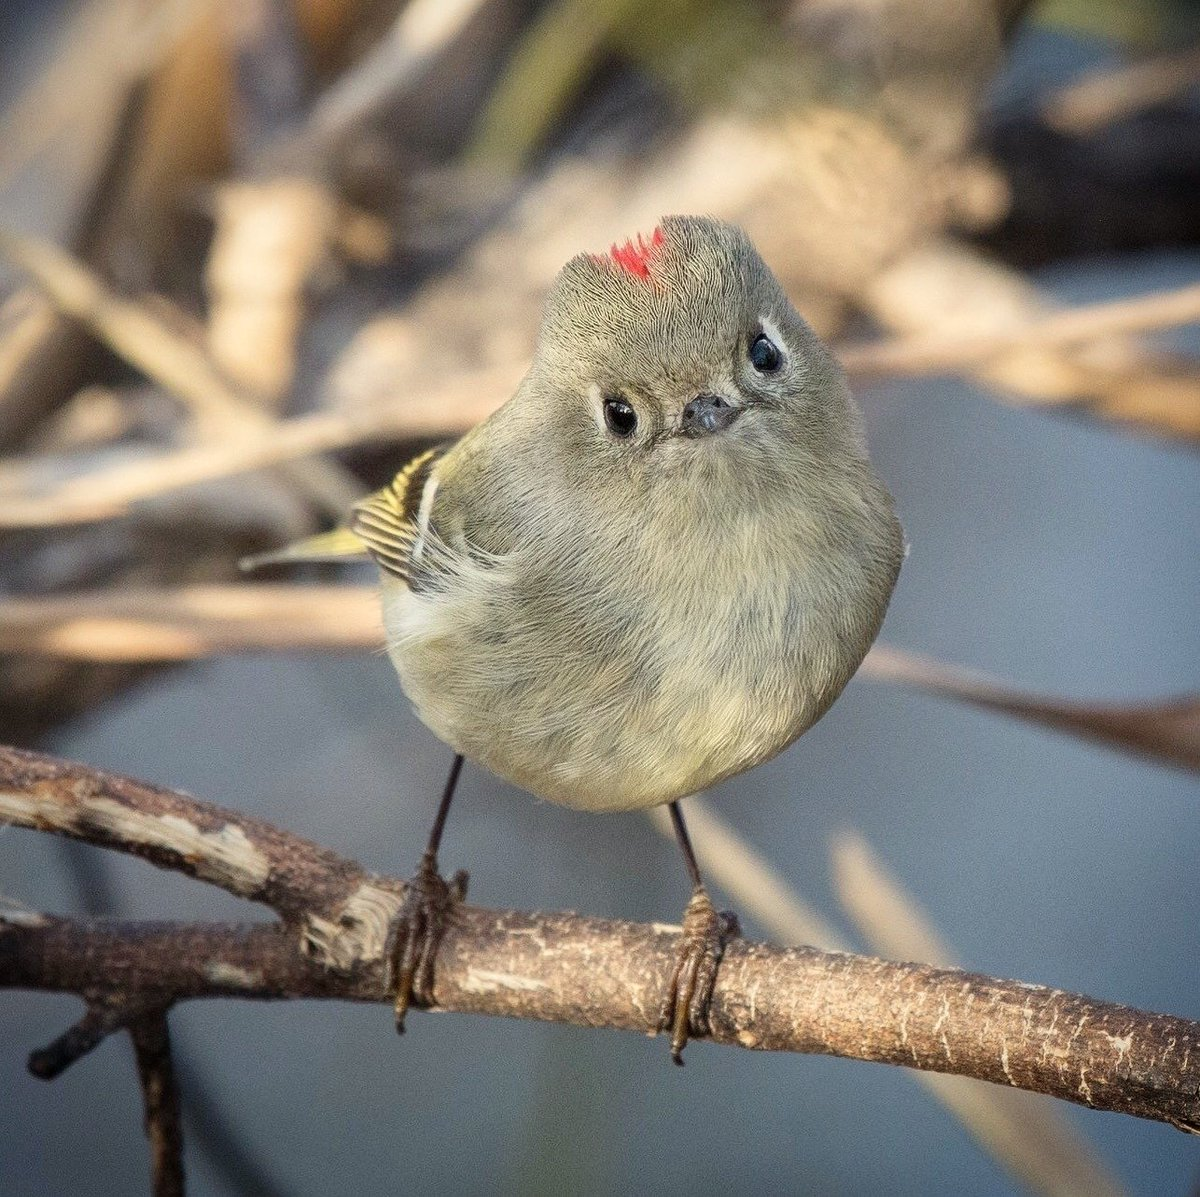 We interrupt your daily twitter scrolling to bring you this photo of this Ruby-crowned Kinglet because... look at that face 😍. Drop a like and continue your day.